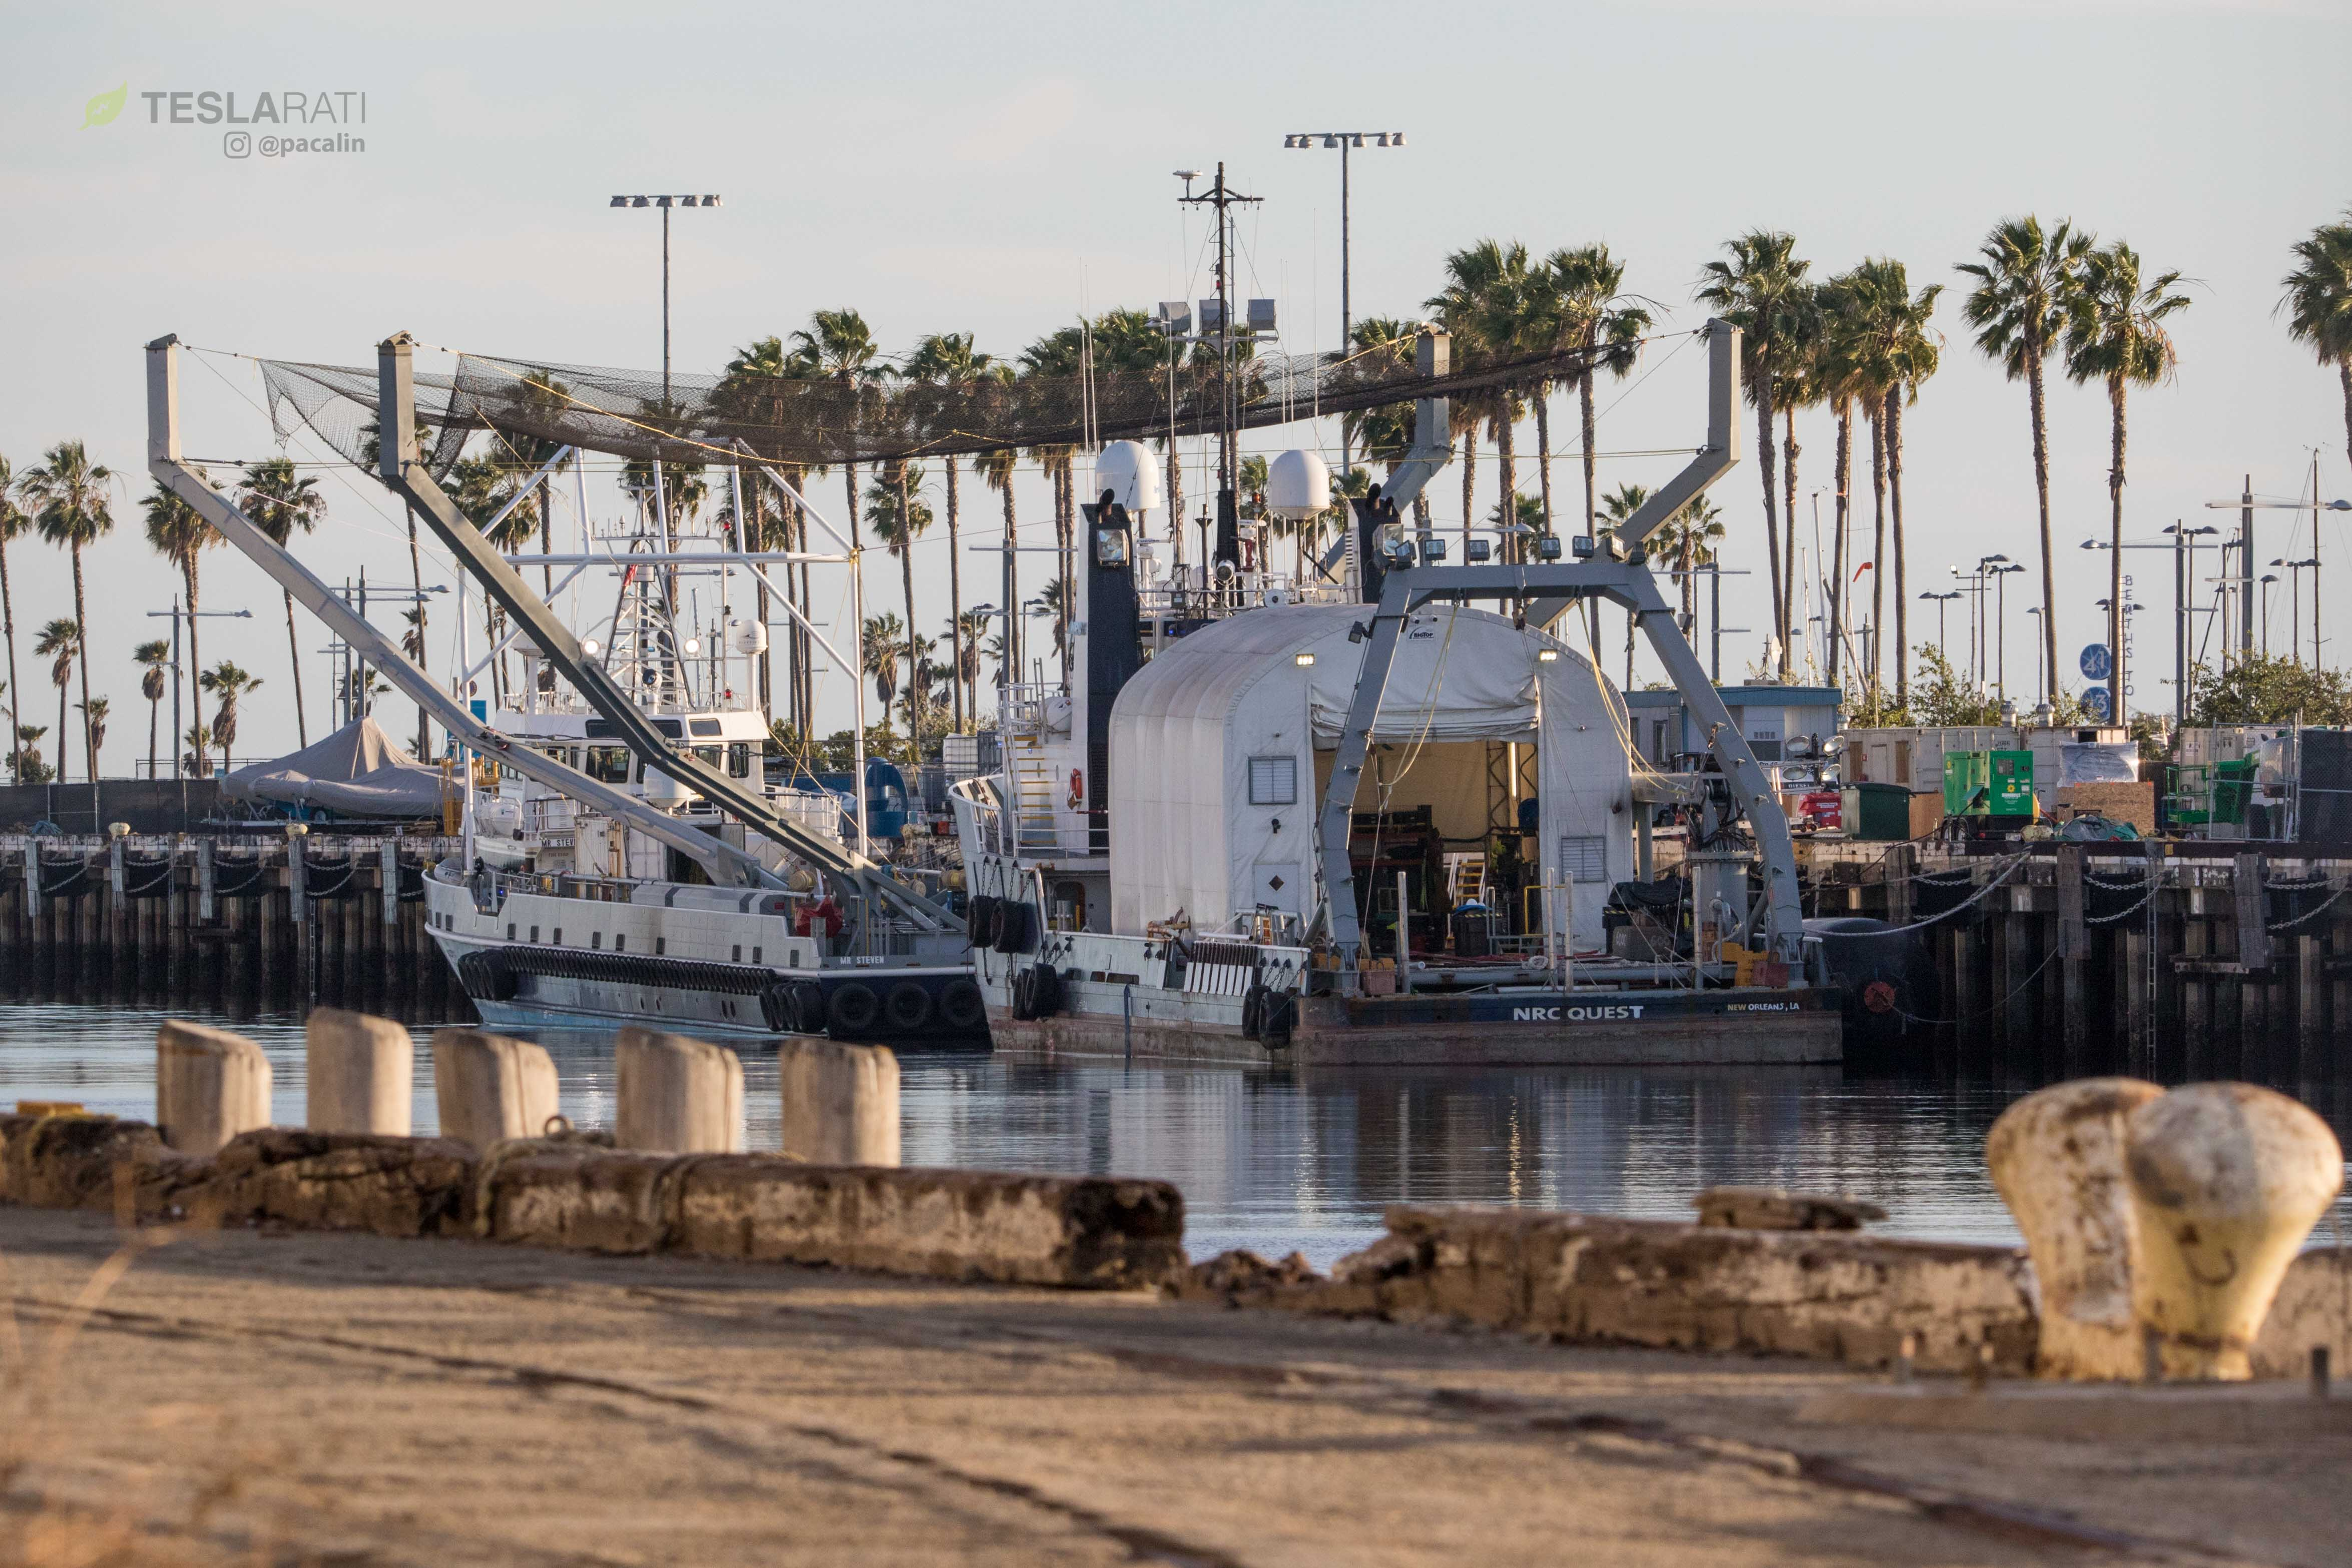 SpaceX fairing recovery boats 2 (Pauline Acalin)